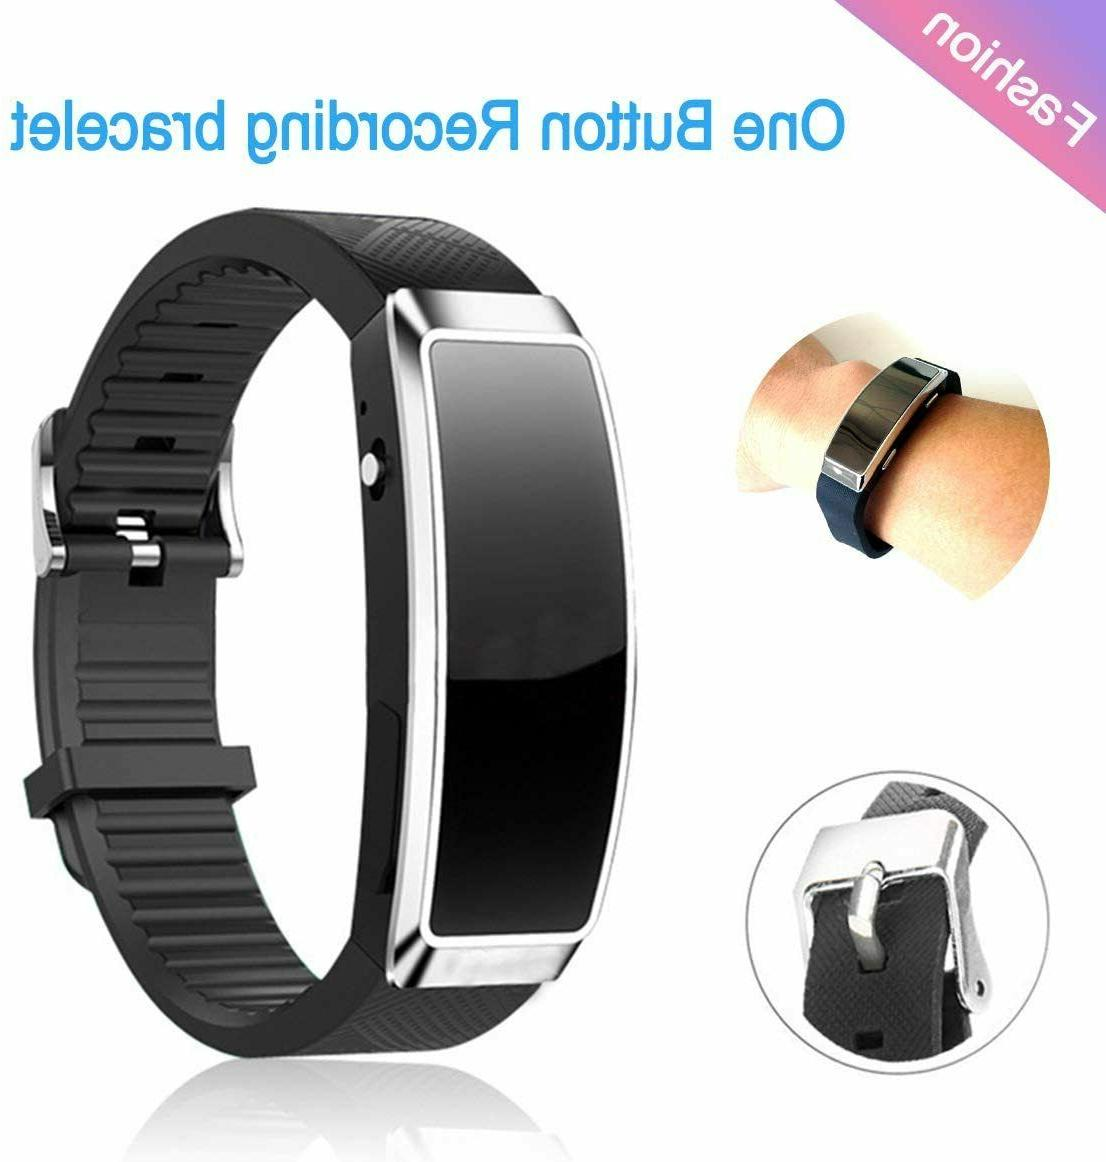 8G Digital Voice Recorders Wrist Watch Business Dictaphone